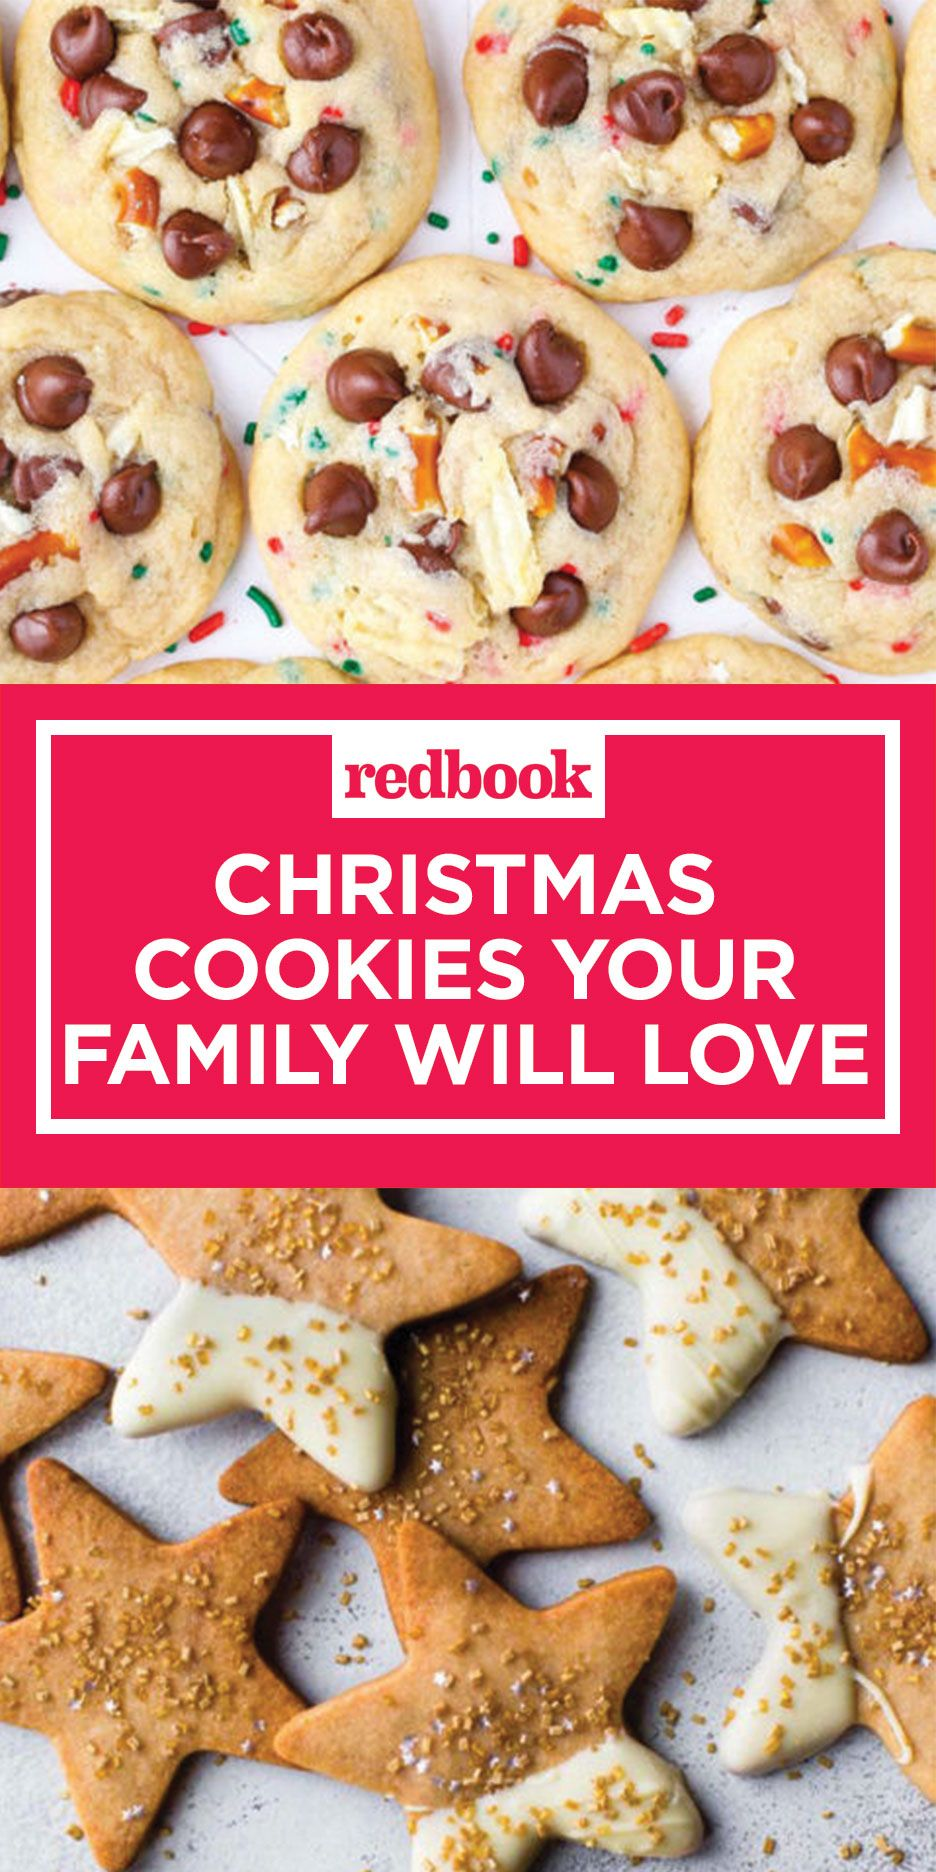 68 Festive Christmas Cookie Recipes - Delicious Holiday Cookie Ideas